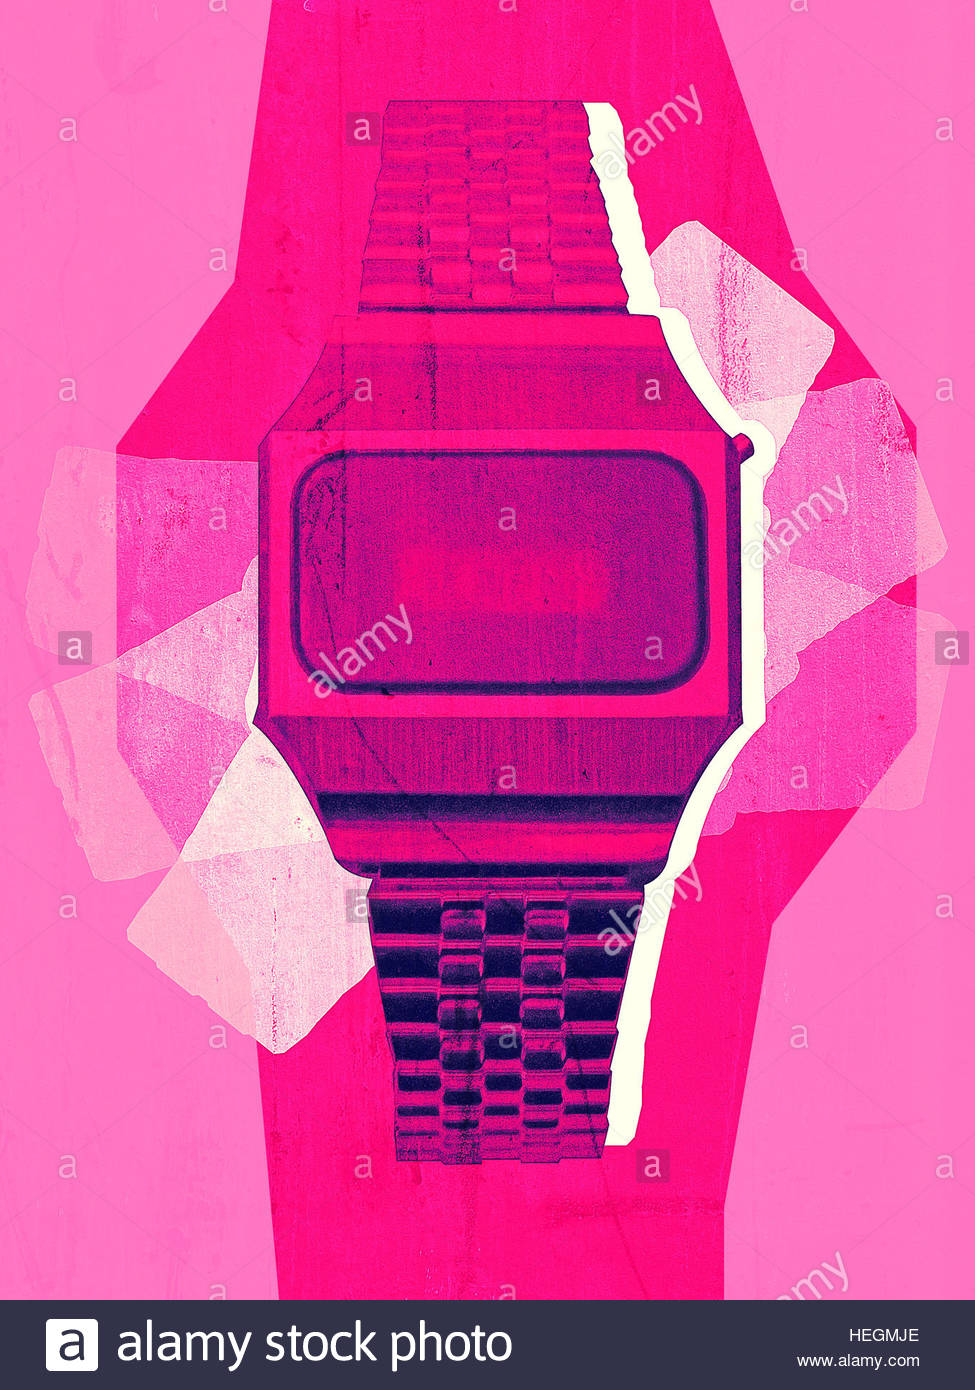 Digital Watch LED vintage retro distressed photo illustration - Stock Image